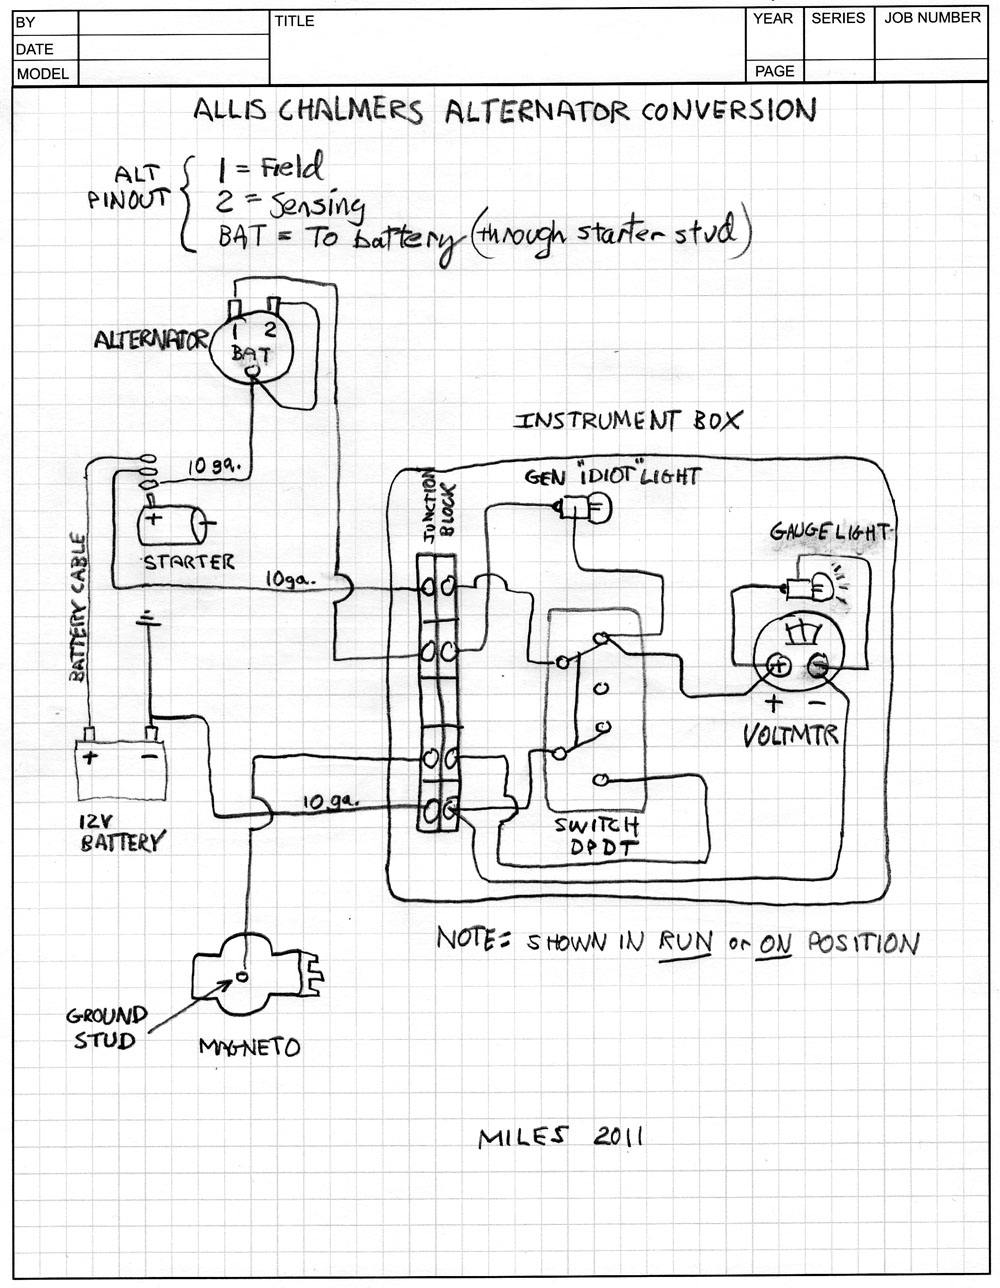 ACshematicjpg 12 volt conversion help! allischalmers forum allis chalmers wd 12 volt wiring diagram at fashall.co